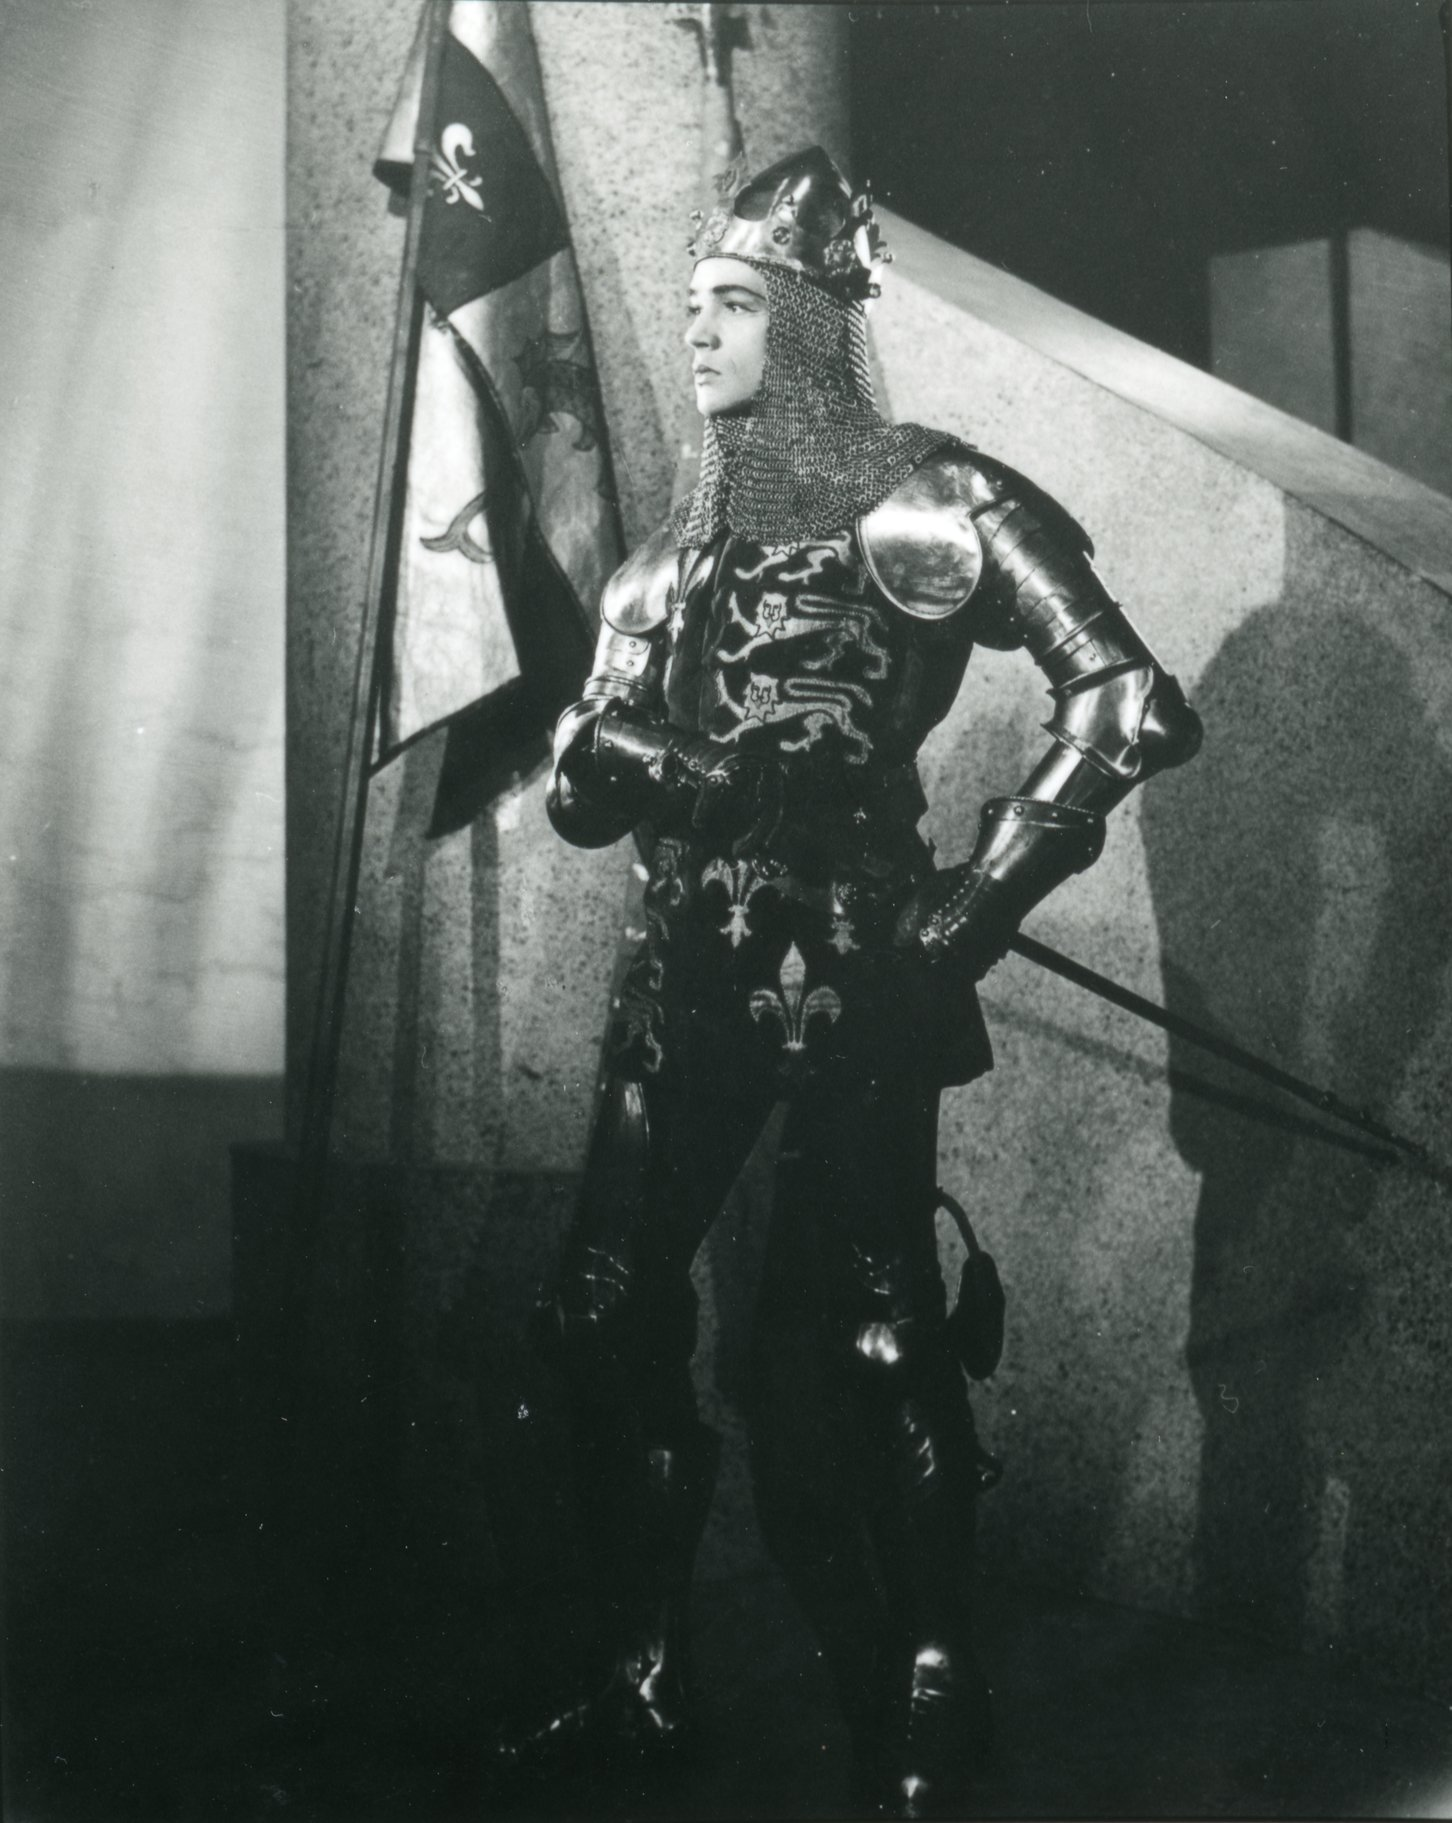 Paul Scofield stands wearing chain mail armour and crown as Henry V in the 1946 production of Henry V